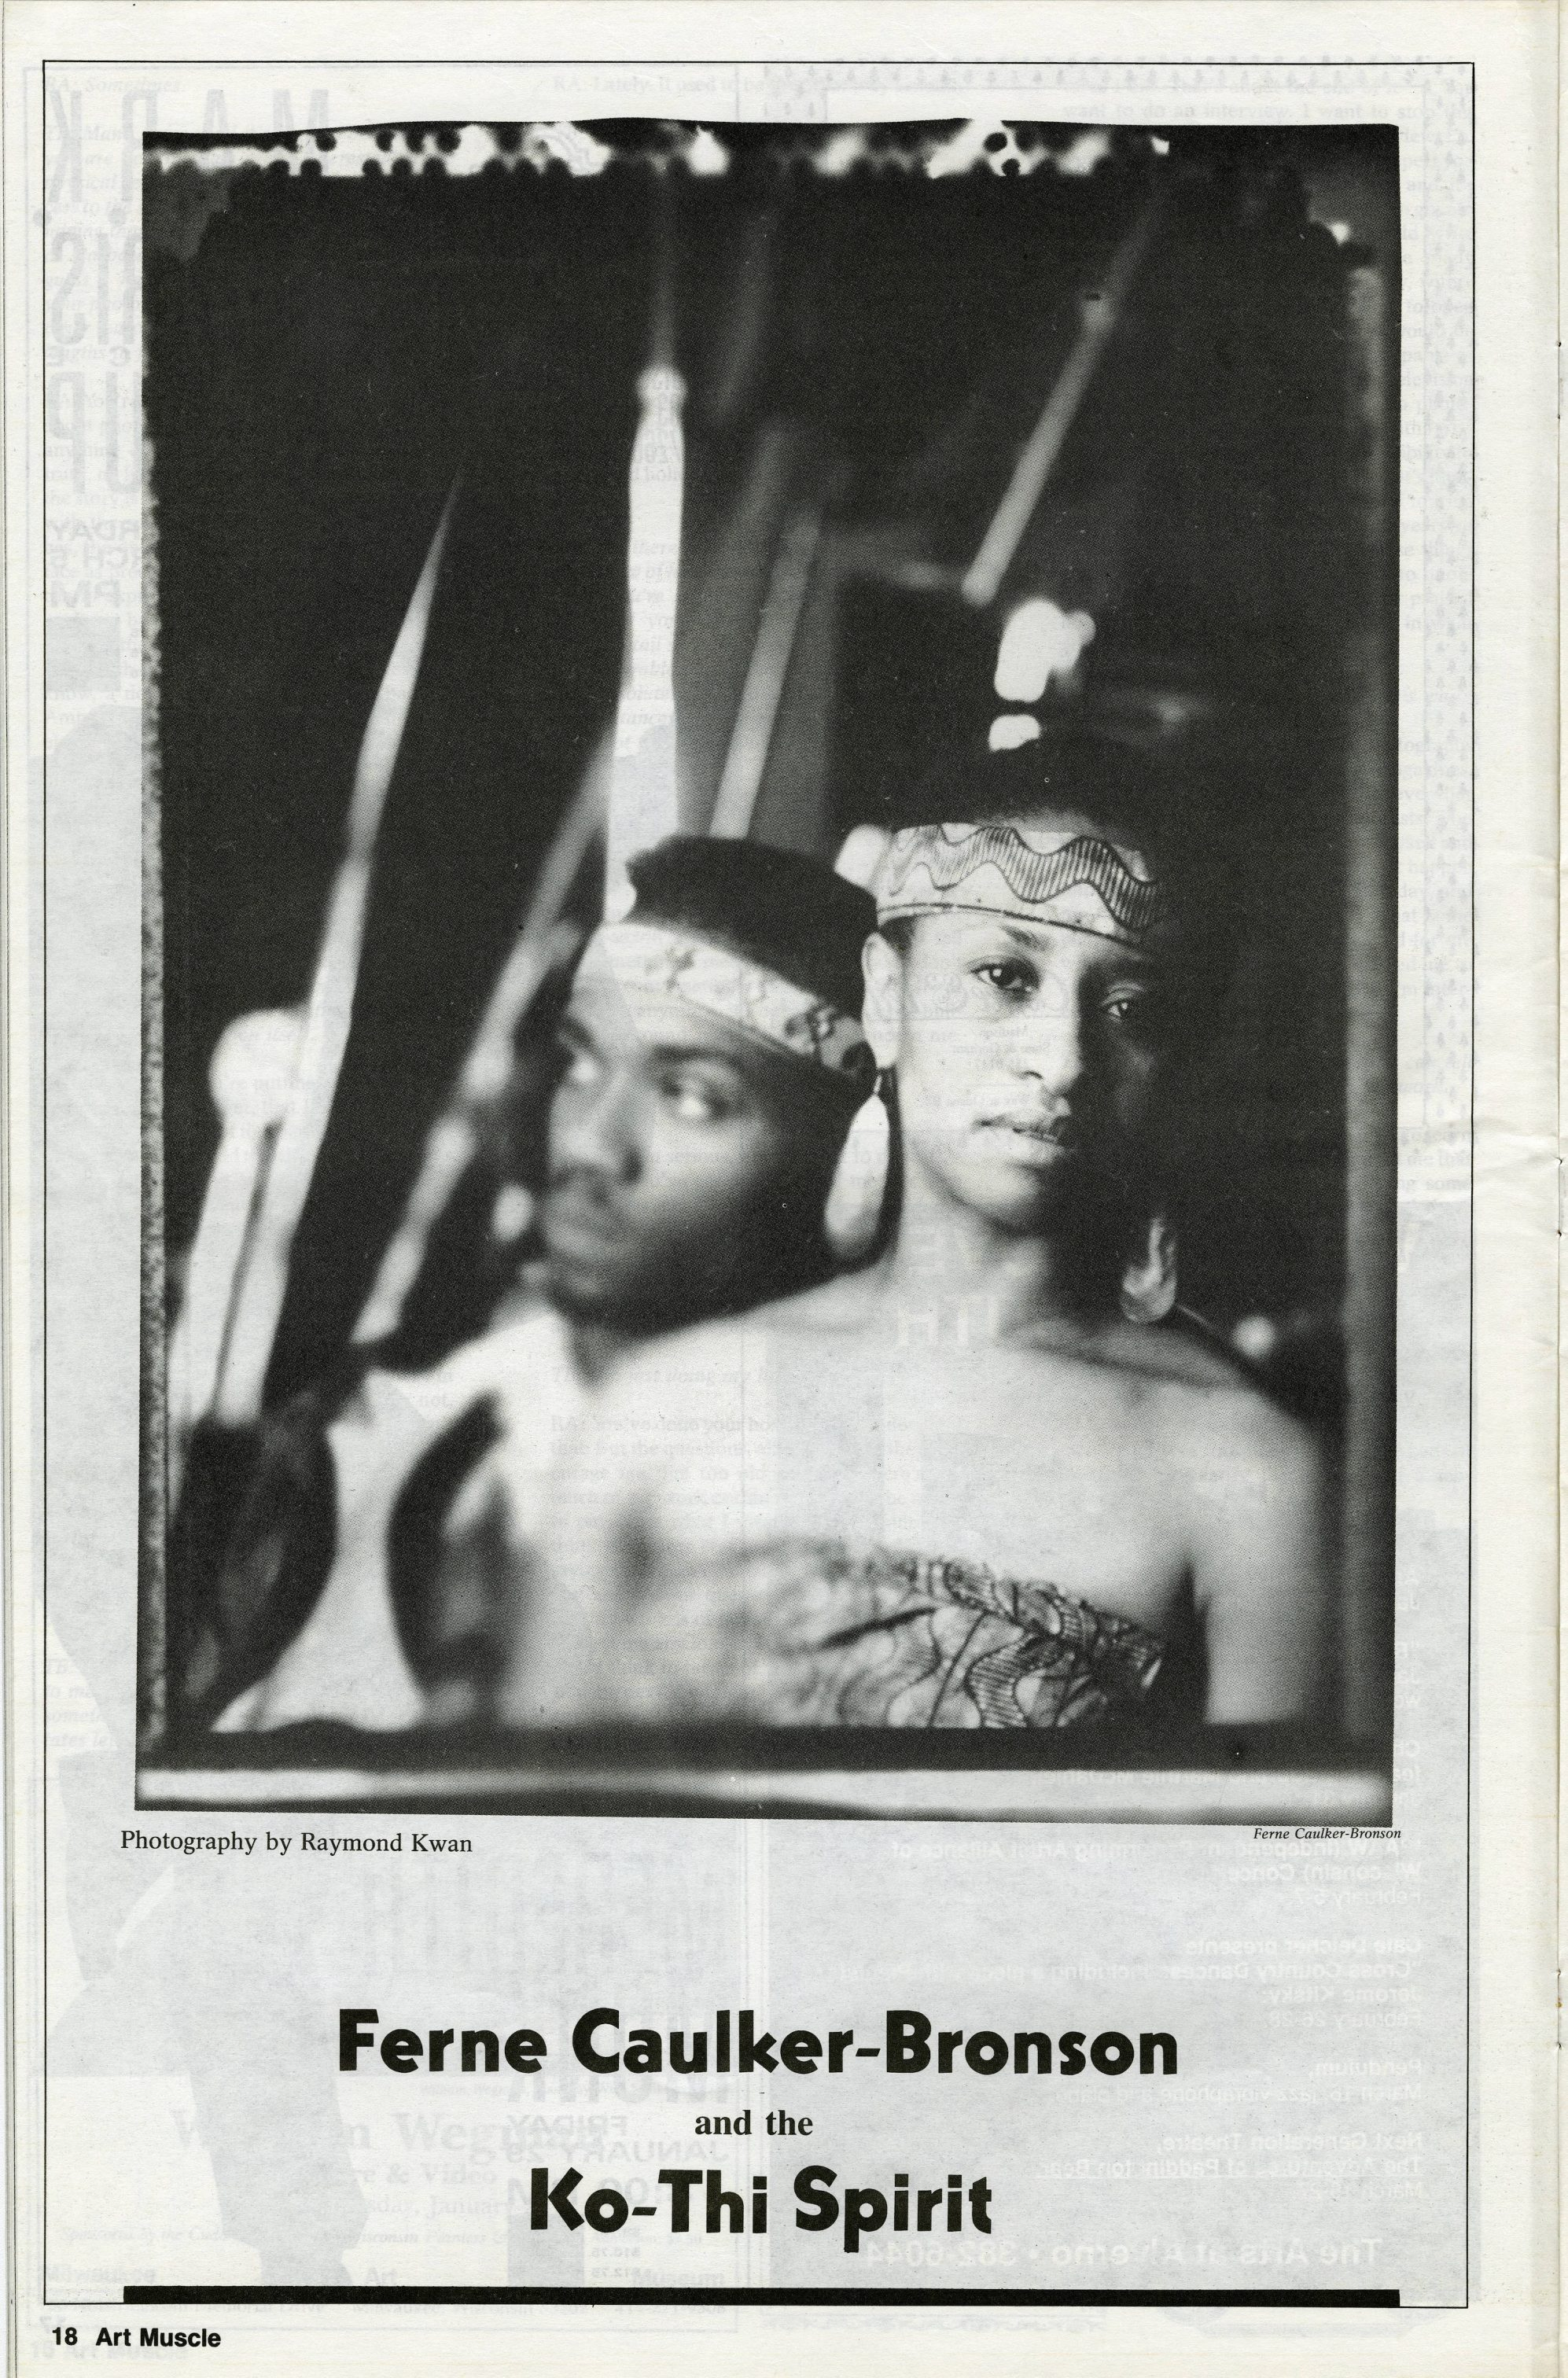 Ferne Caulker-Bronson, pictured here, founded the Ko-Thi Dance Company in 1969.